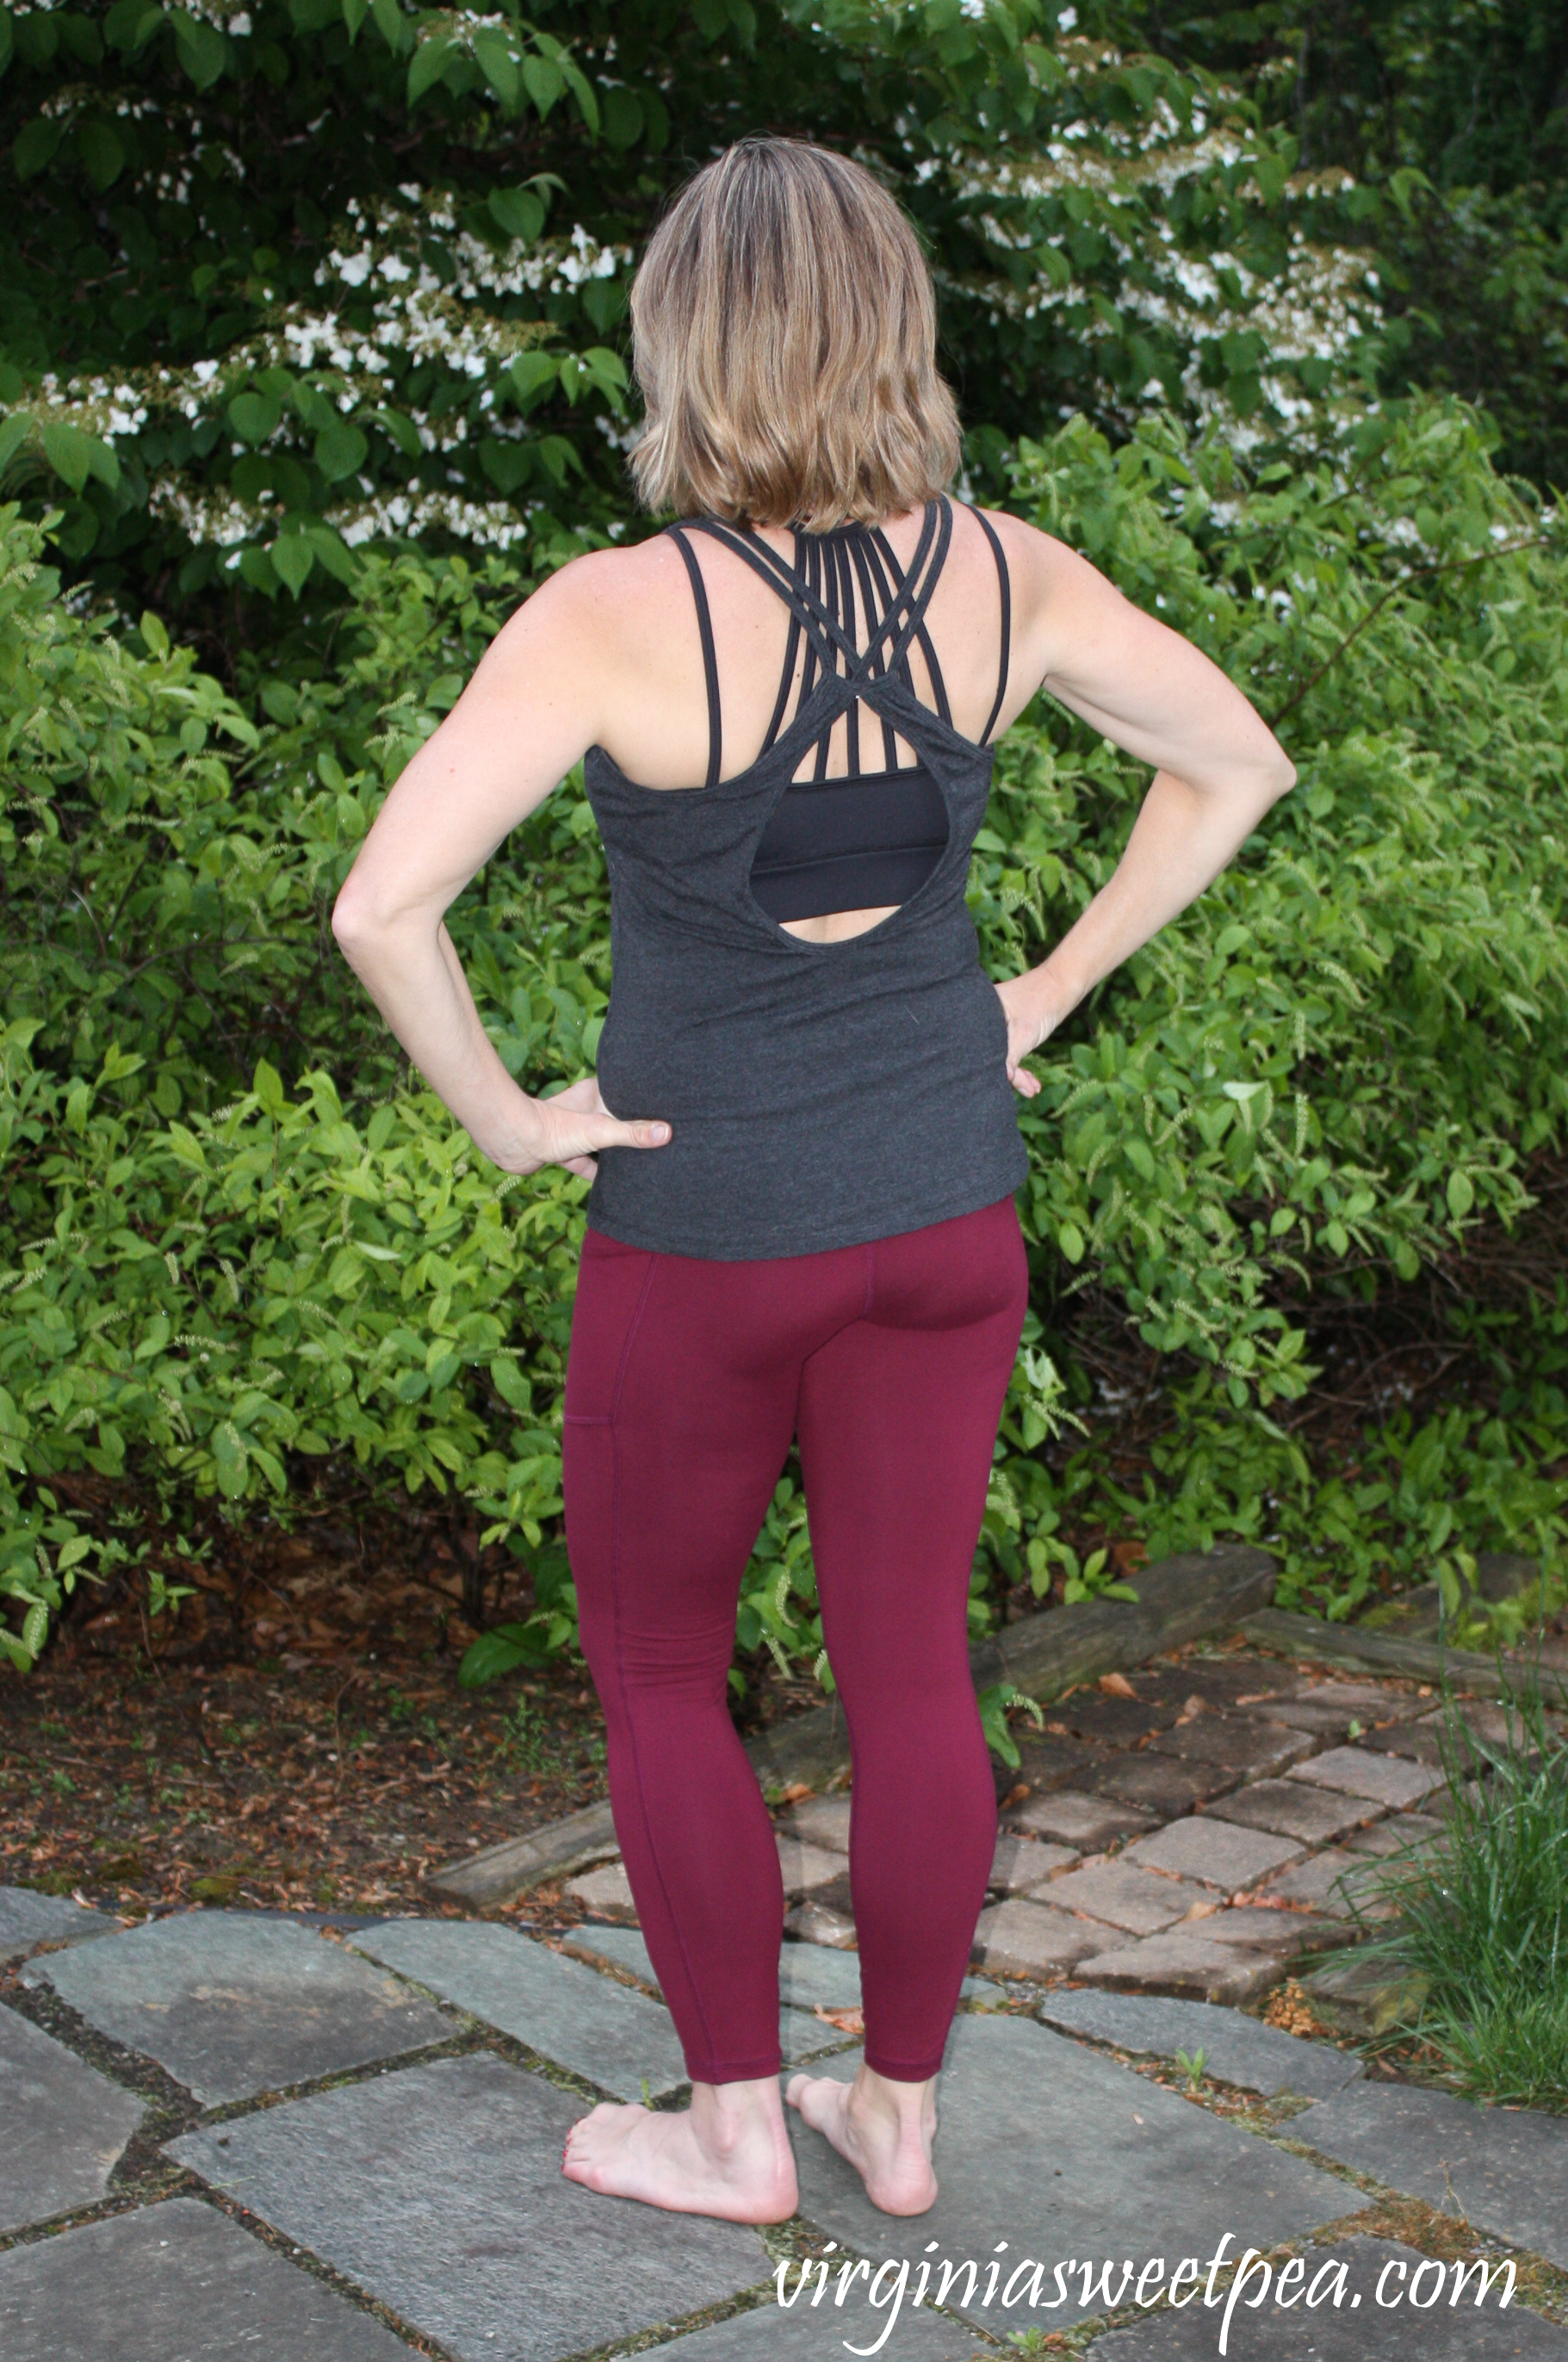 Fashom Review-RAE Mode butter Soft Yoga Stitch Leggings with Constantly Varied Gear Open Back Tank and Constantly Varied Gear Black Sports Bra